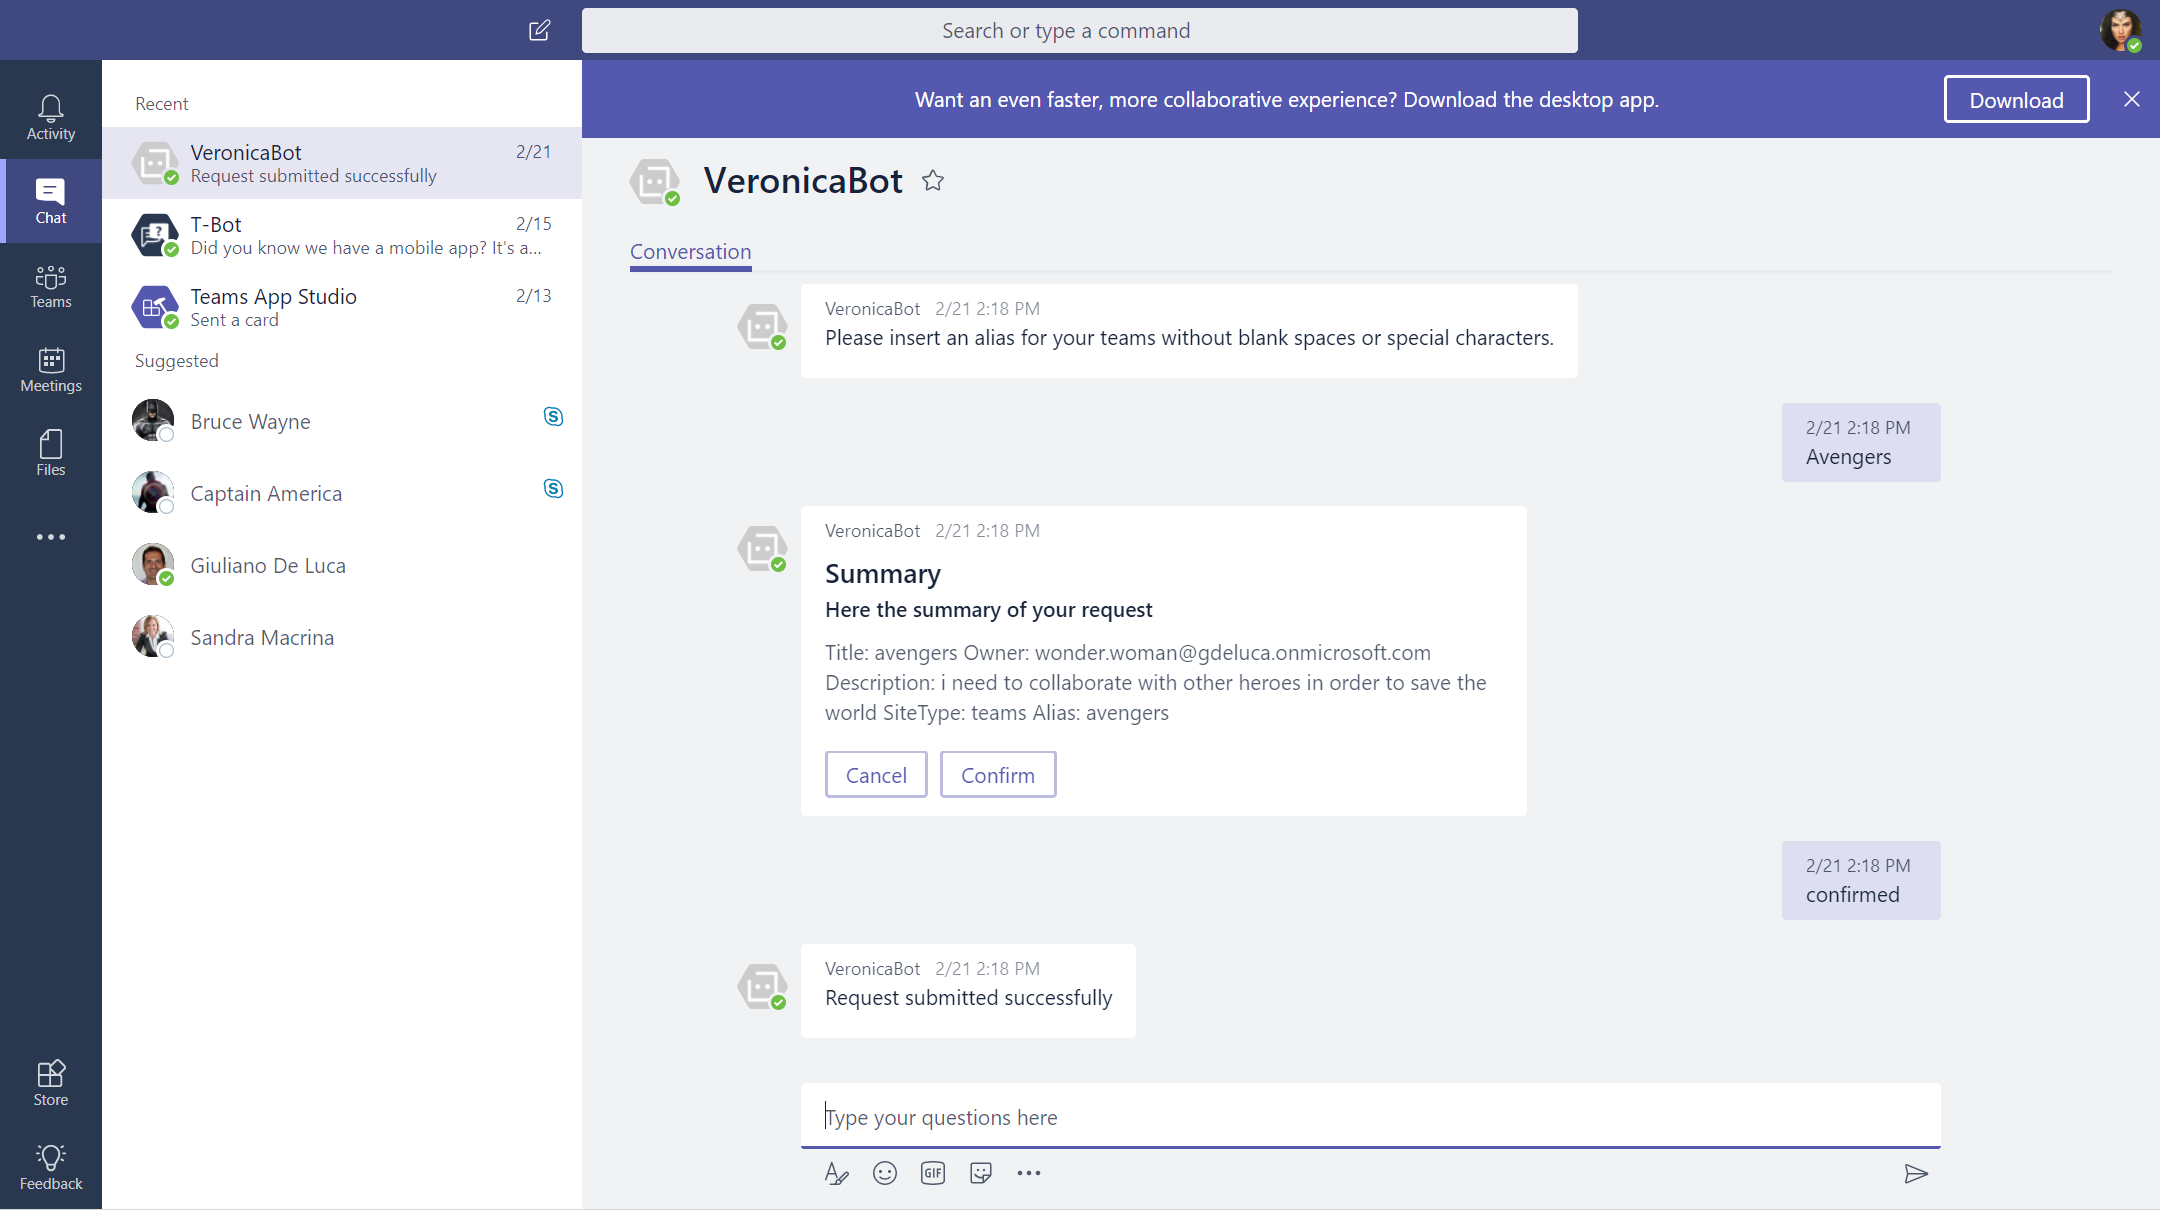 This sample demonstrates how to integrate a typical enterprise scenario where the user can submit a creation's request for a new SharePoint team site, communication site or a Microsoft team through a node.js Bot (App Only) which is available on Teams, Sky